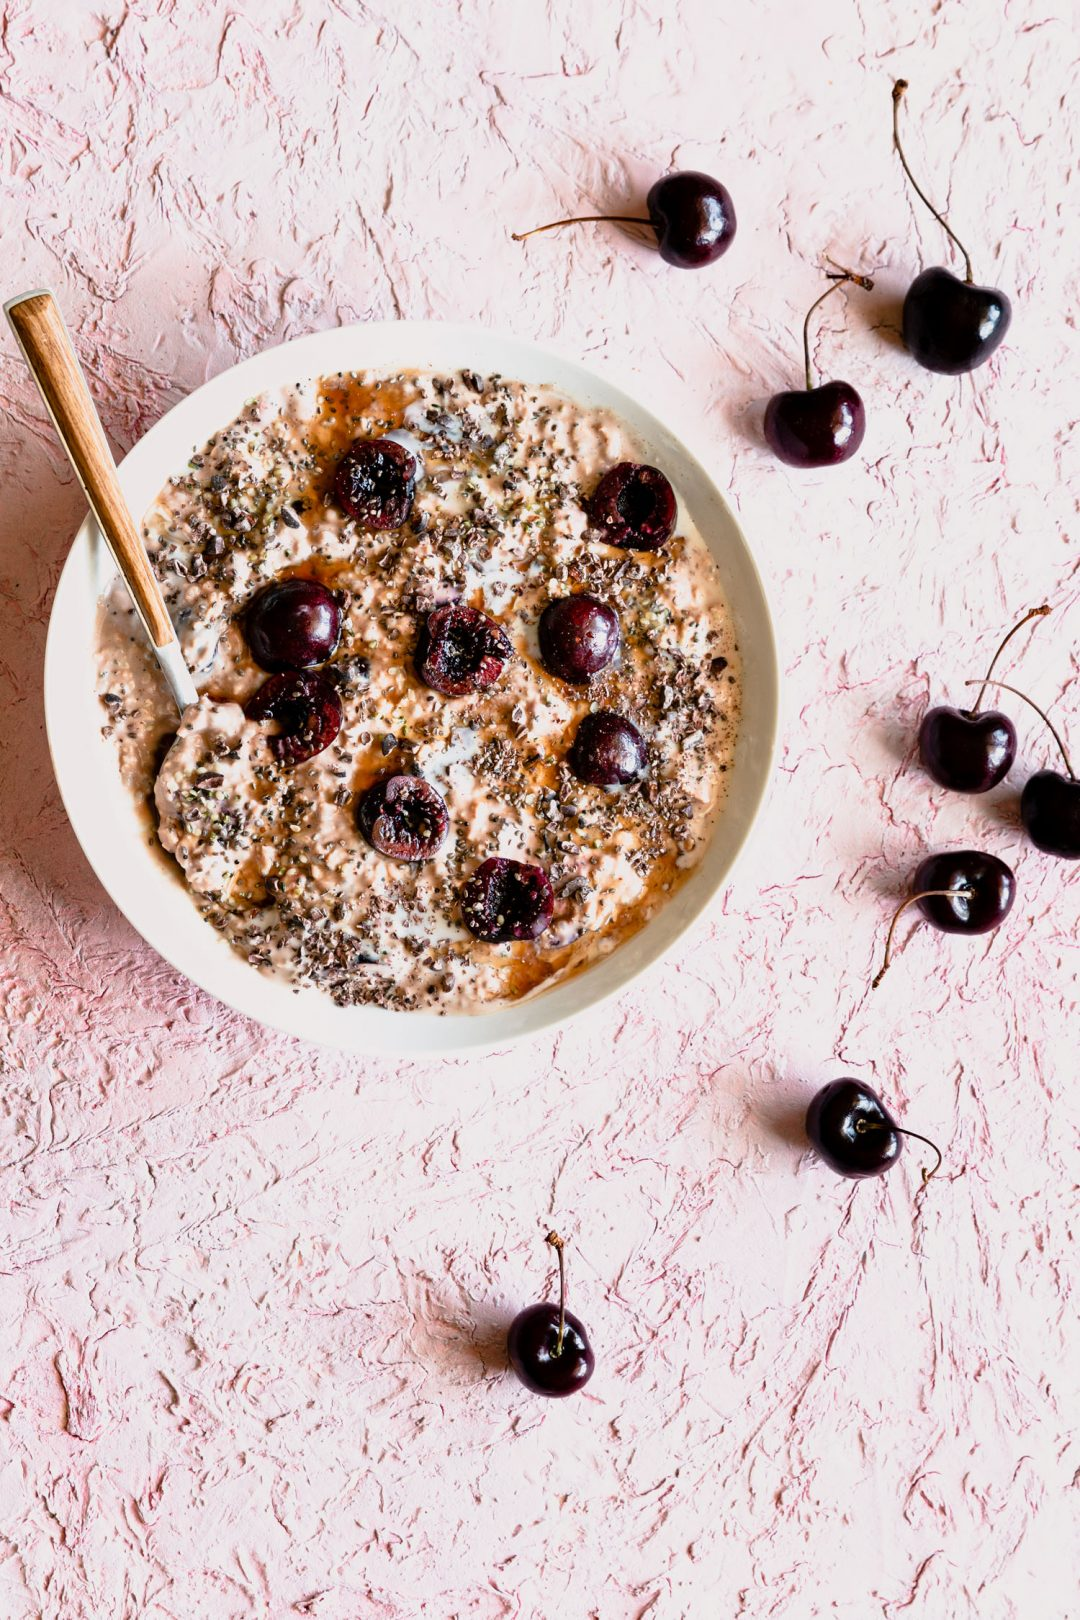 Overhead shot of Cherry Overnight Oats in a bowl with a spoon surrounded by cherries.